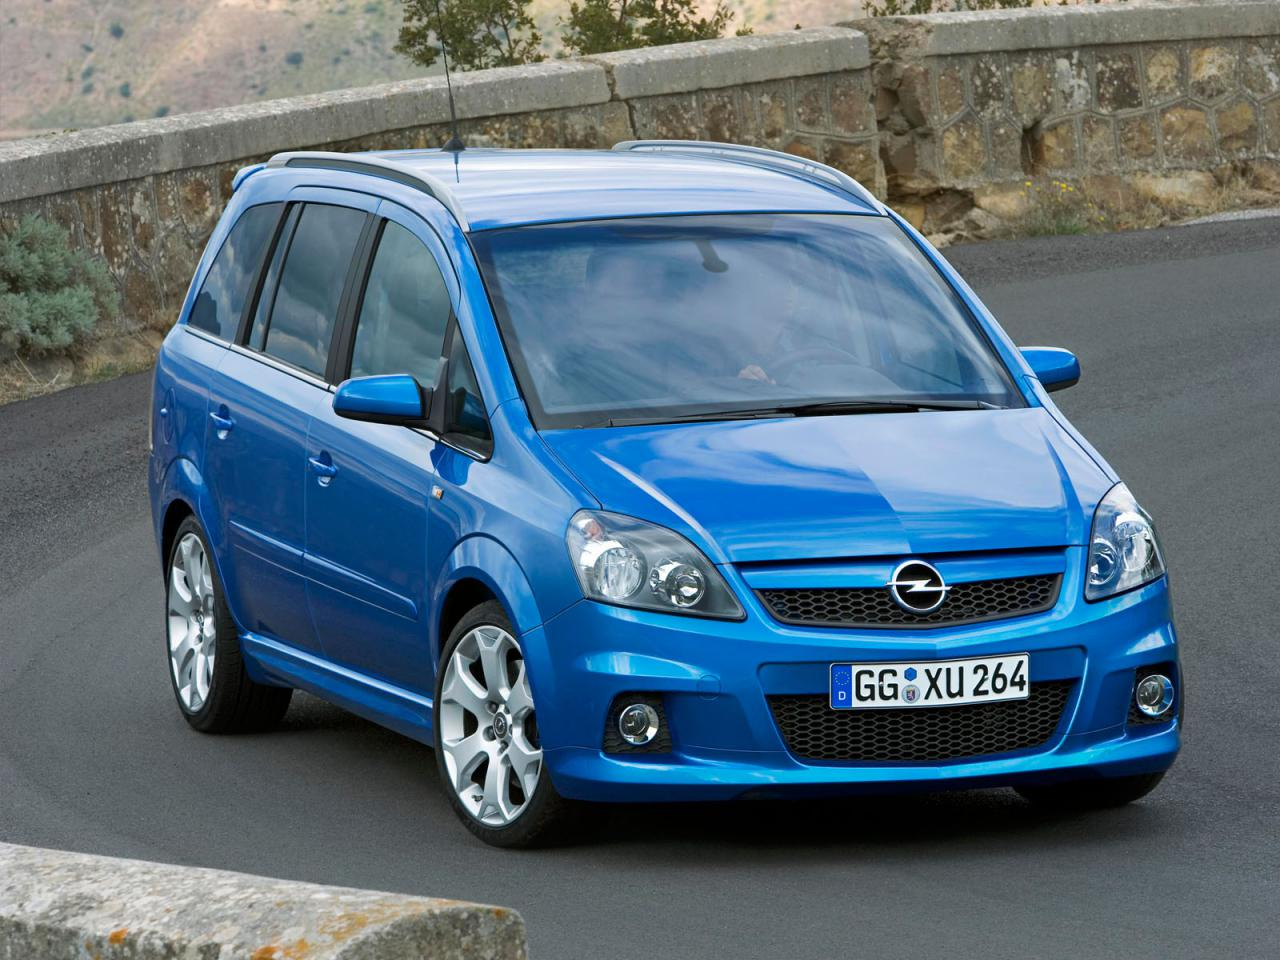 luxury fast cars wallpapers opel zafira 2010 wallpapers and specs. Black Bedroom Furniture Sets. Home Design Ideas